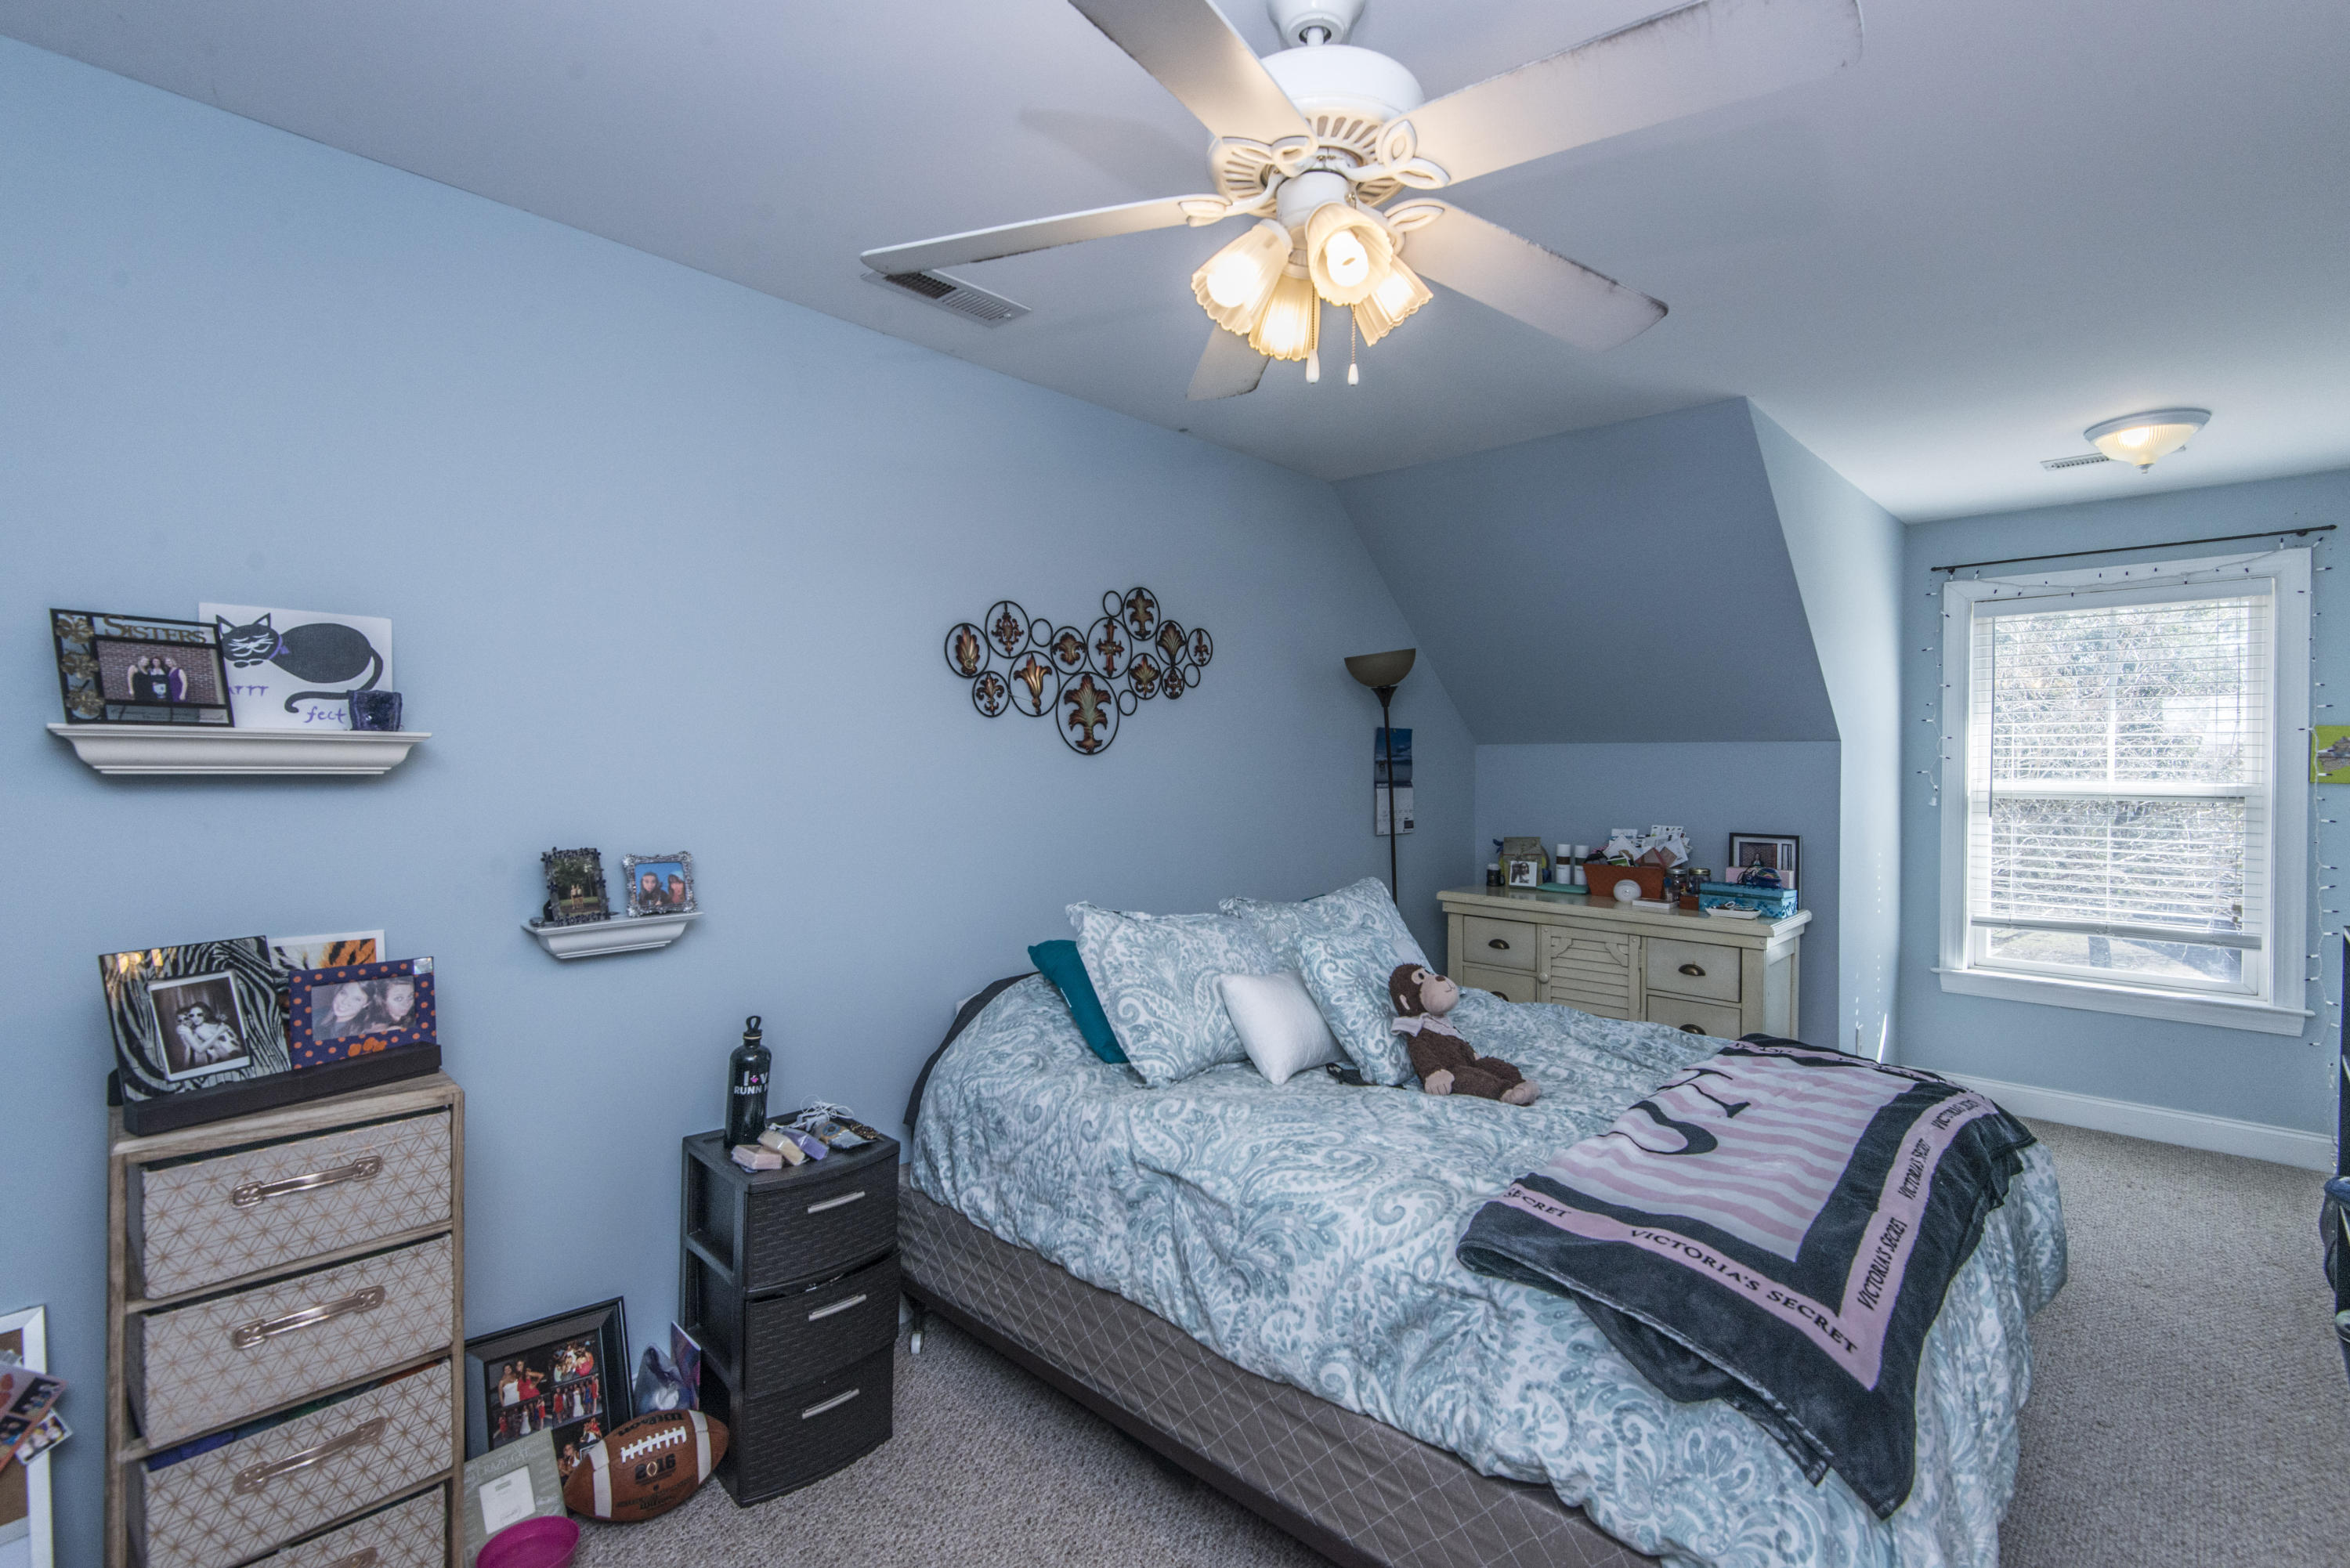 The Reserve at Wando East Homes For Sale - 1675 Lauda, Mount Pleasant, SC - 10